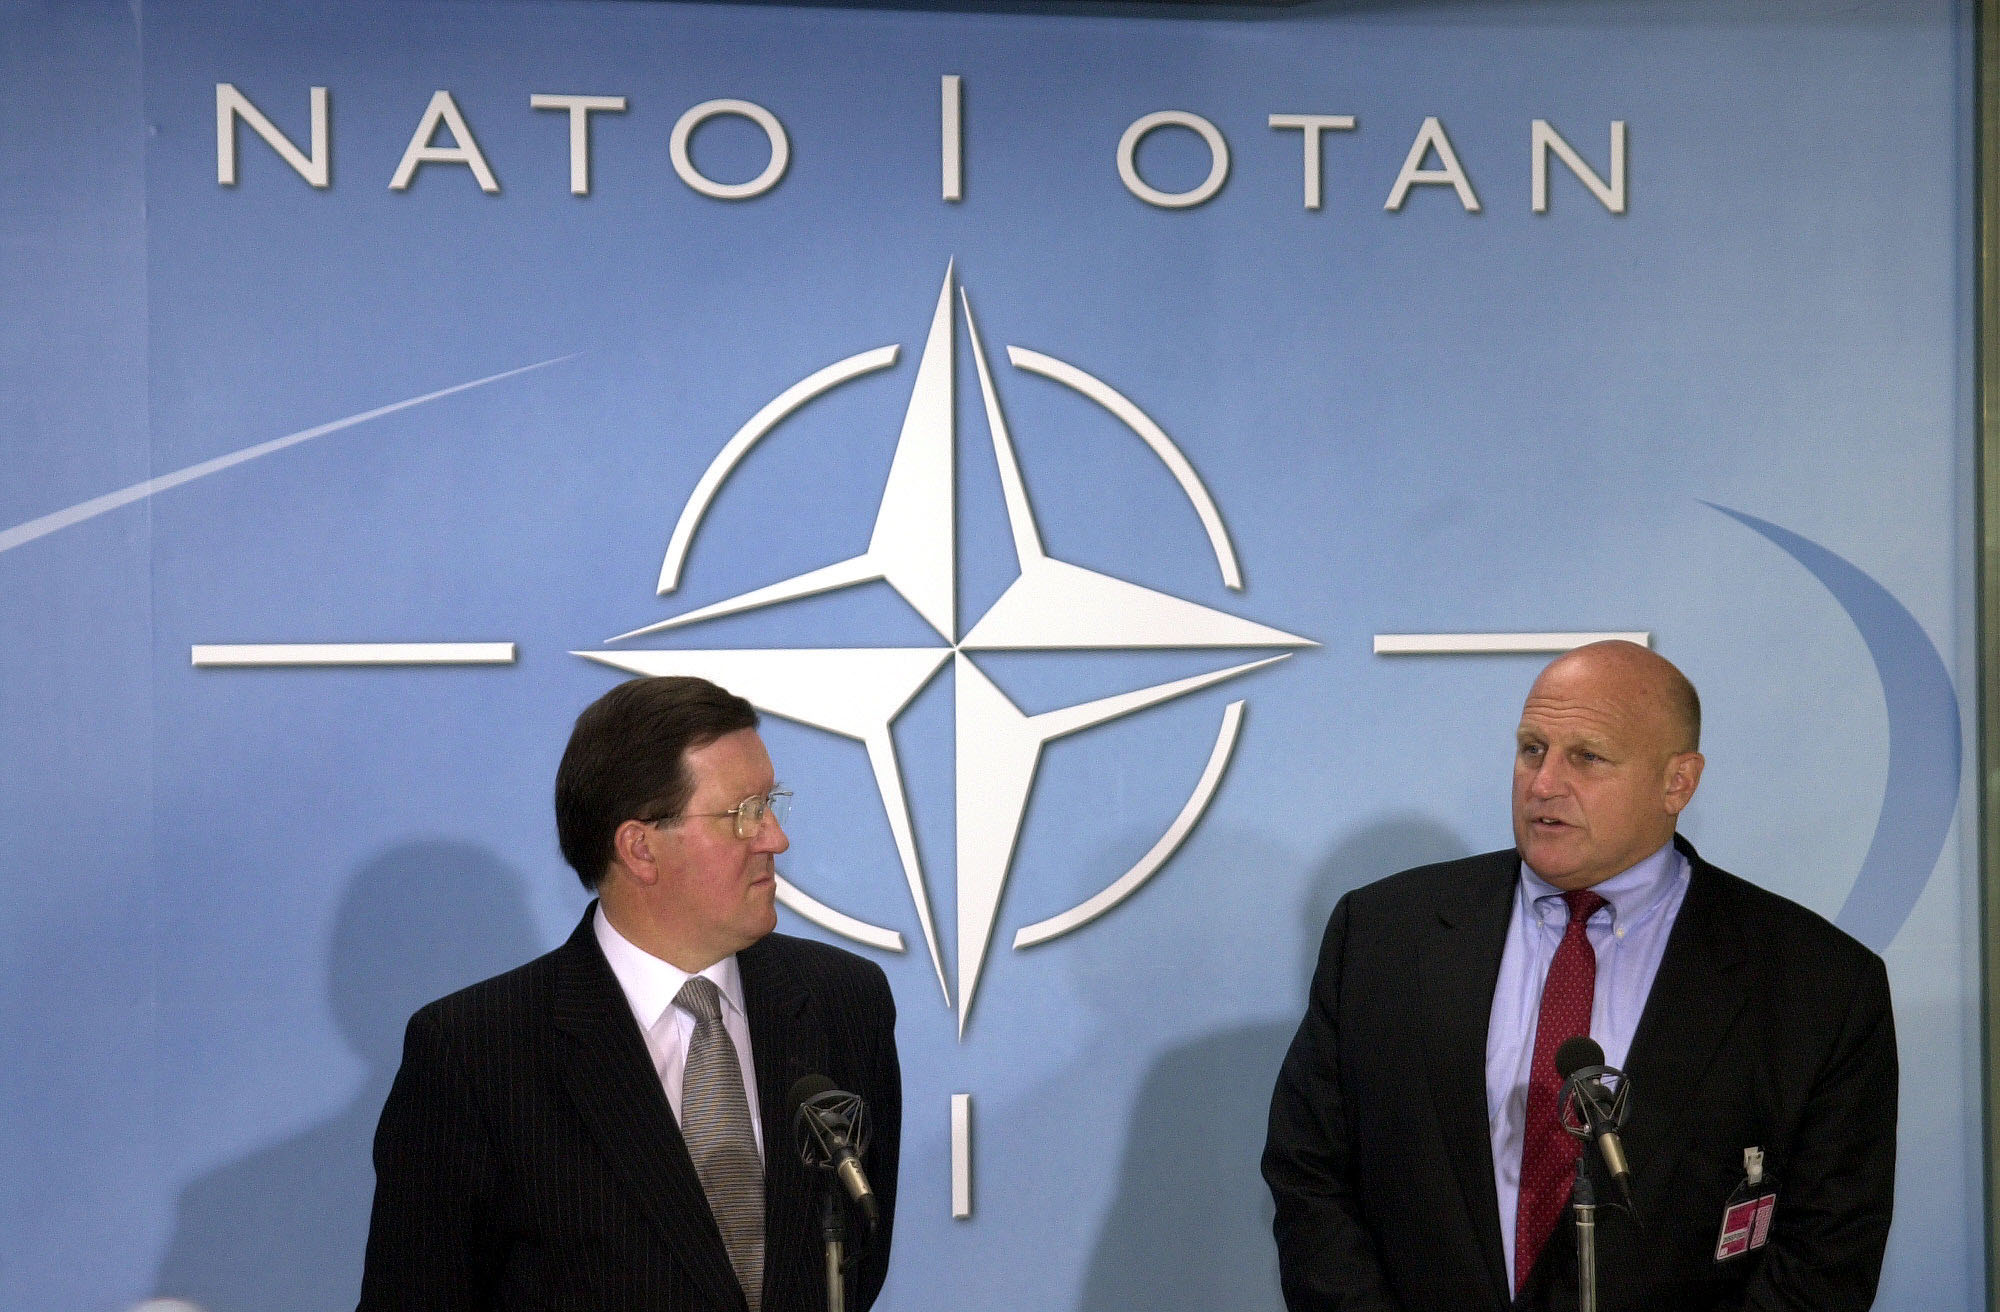 http://www.nato.int/pictures/2001/010920a/b010920a.jpg